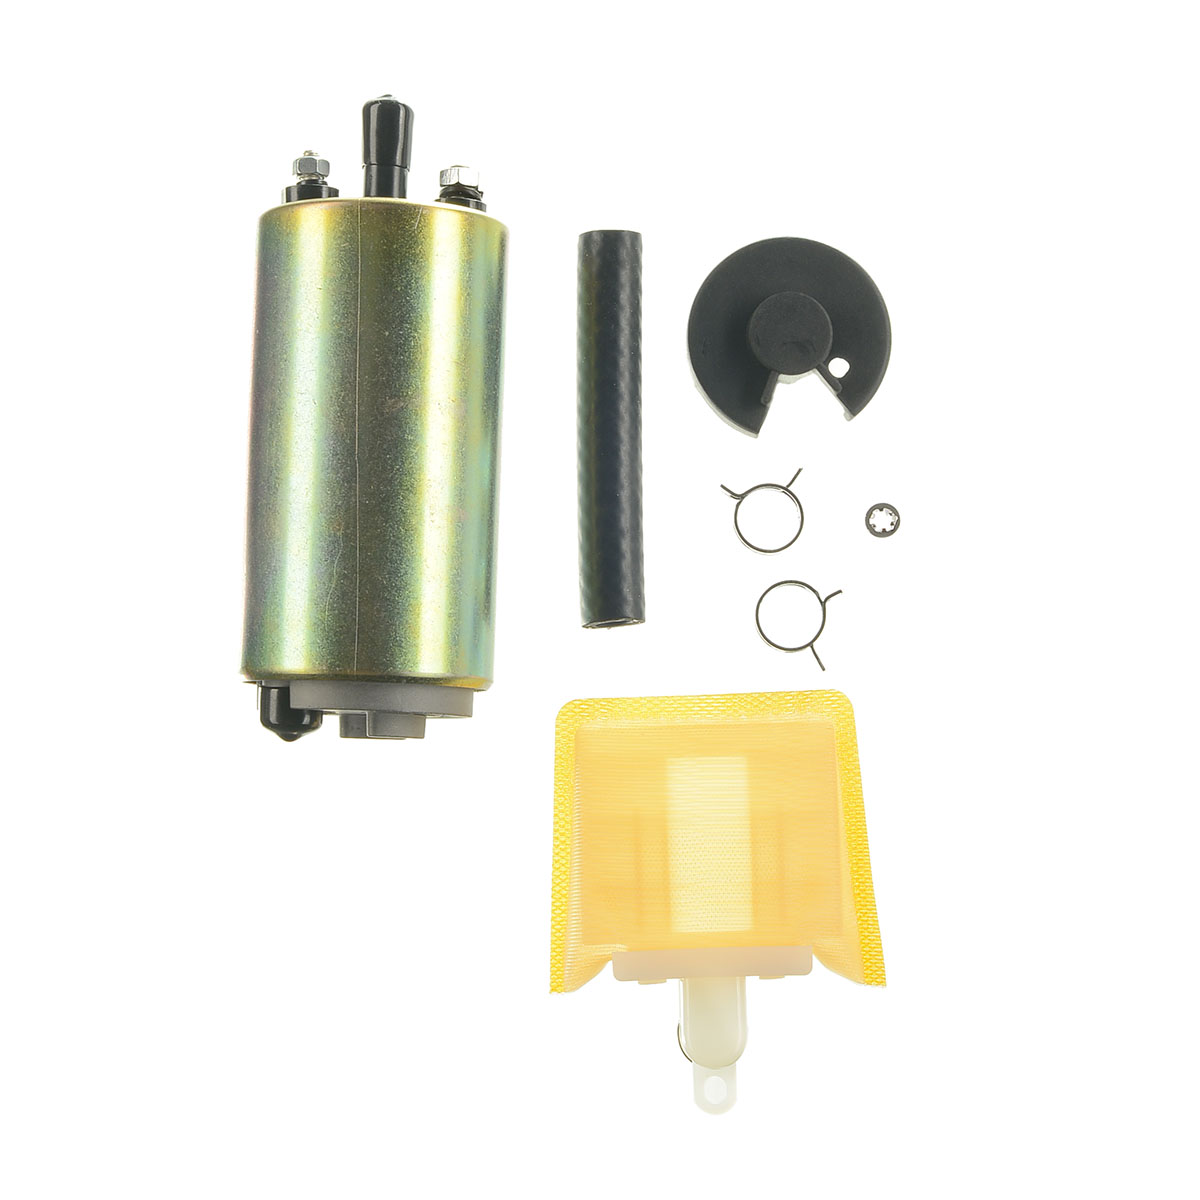 medium resolution of electric fuel pump for toyota camry sv21 i4 2 0l 1987 1988 1989 1990 1991 1992 1993 3s fe sedan wagon in fuel pumps from automobiles motorcycles on